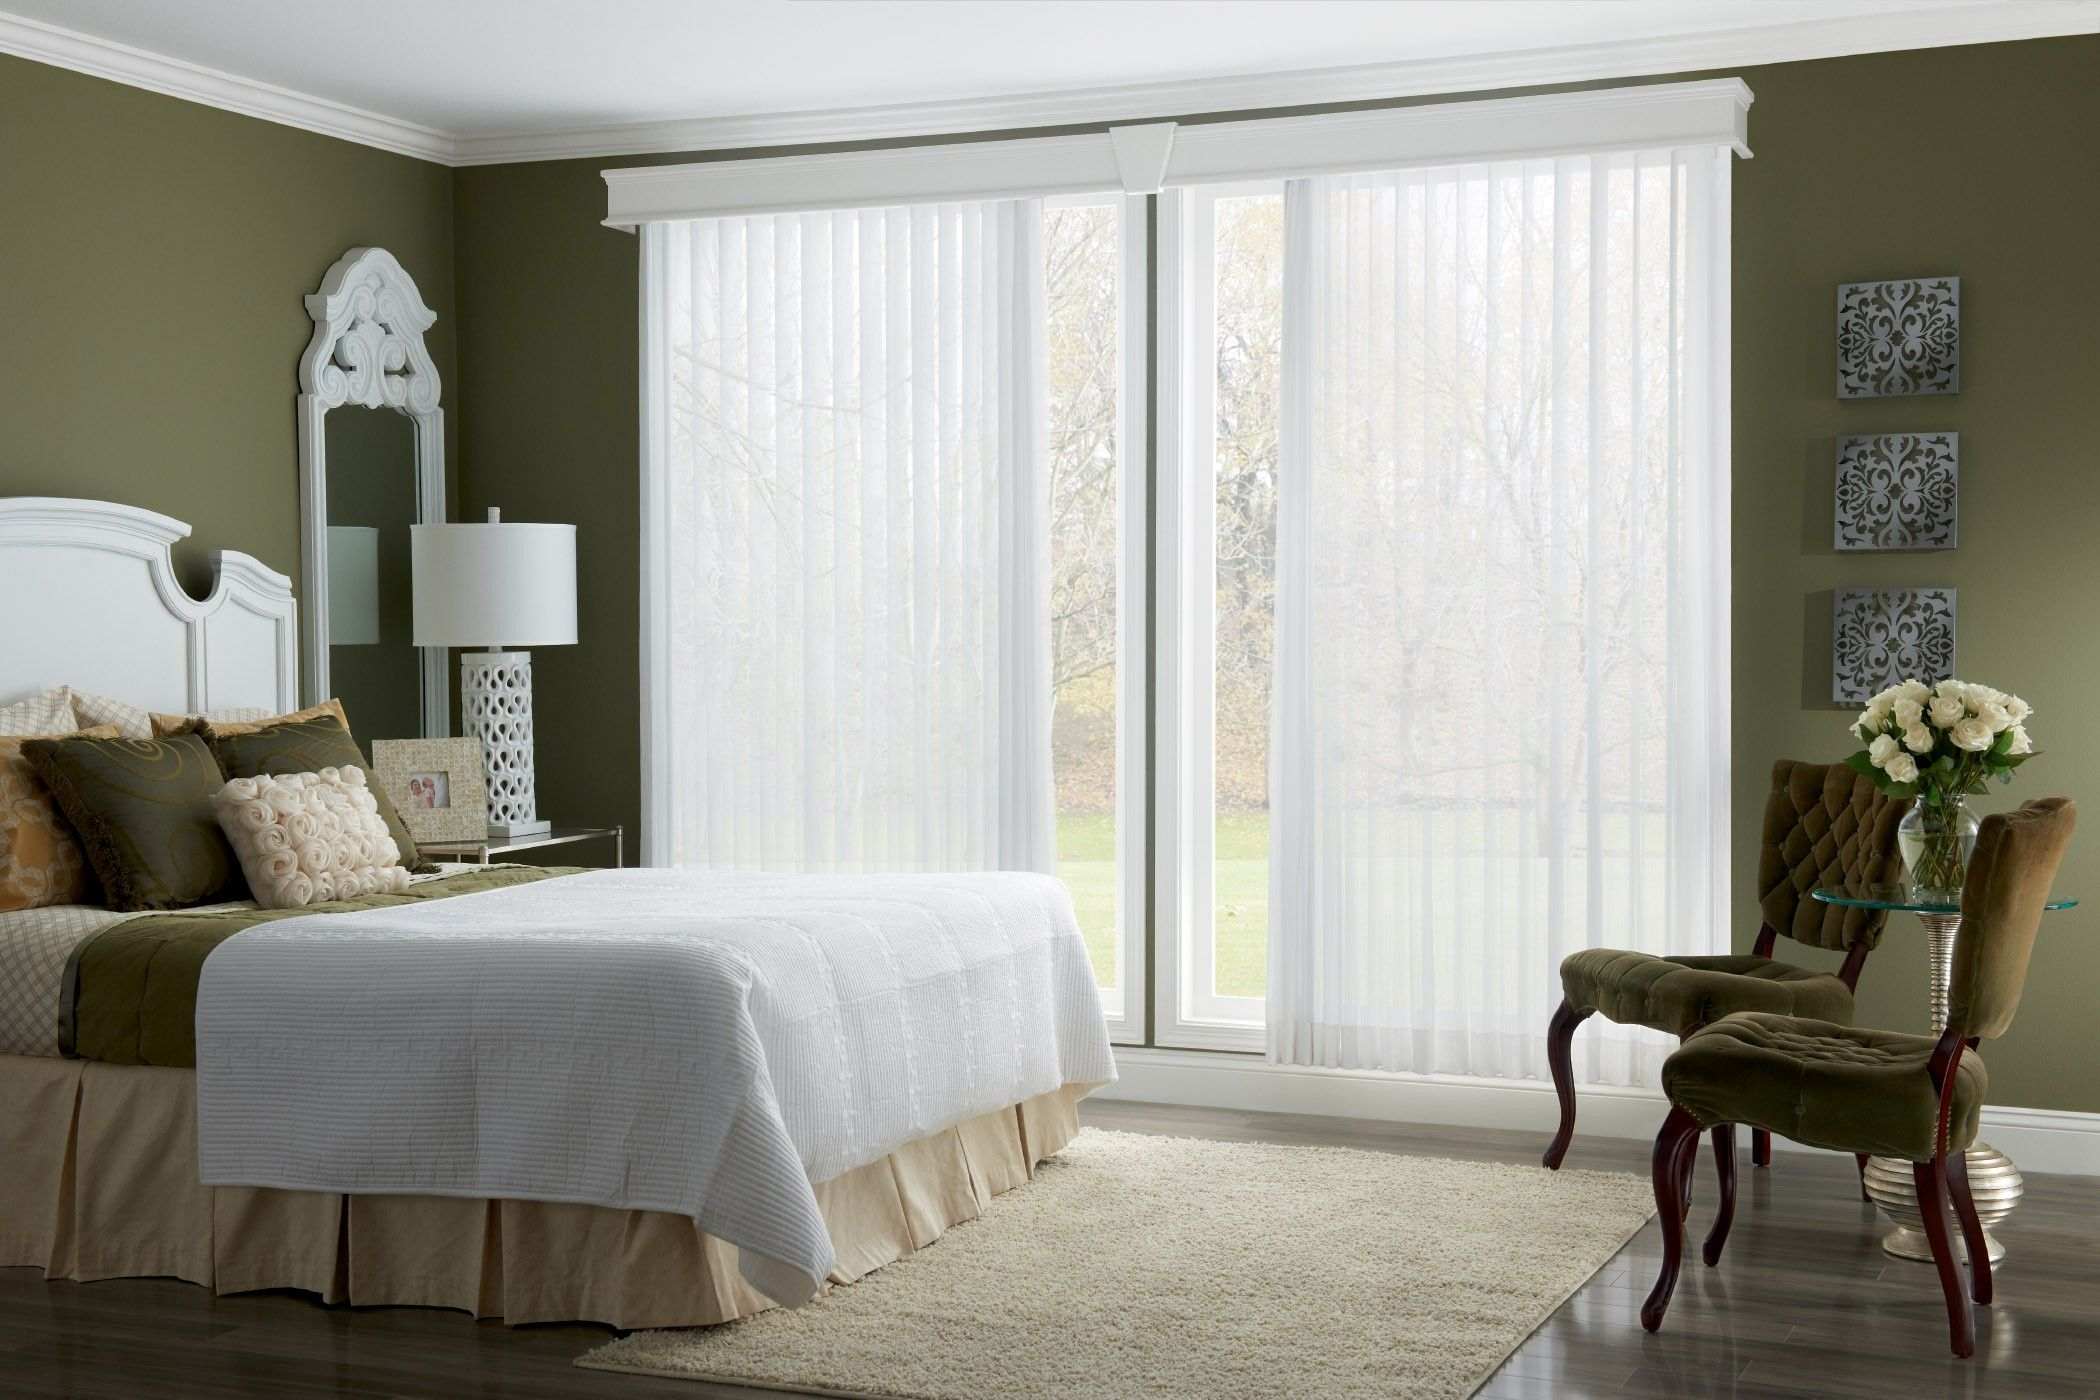 Vertical blinds enhance sliding doors and larger windows into stylish - Interior White Vertical Blinds With Cornice For Patio Sliding Glass Doors Blinds For Patio Doors